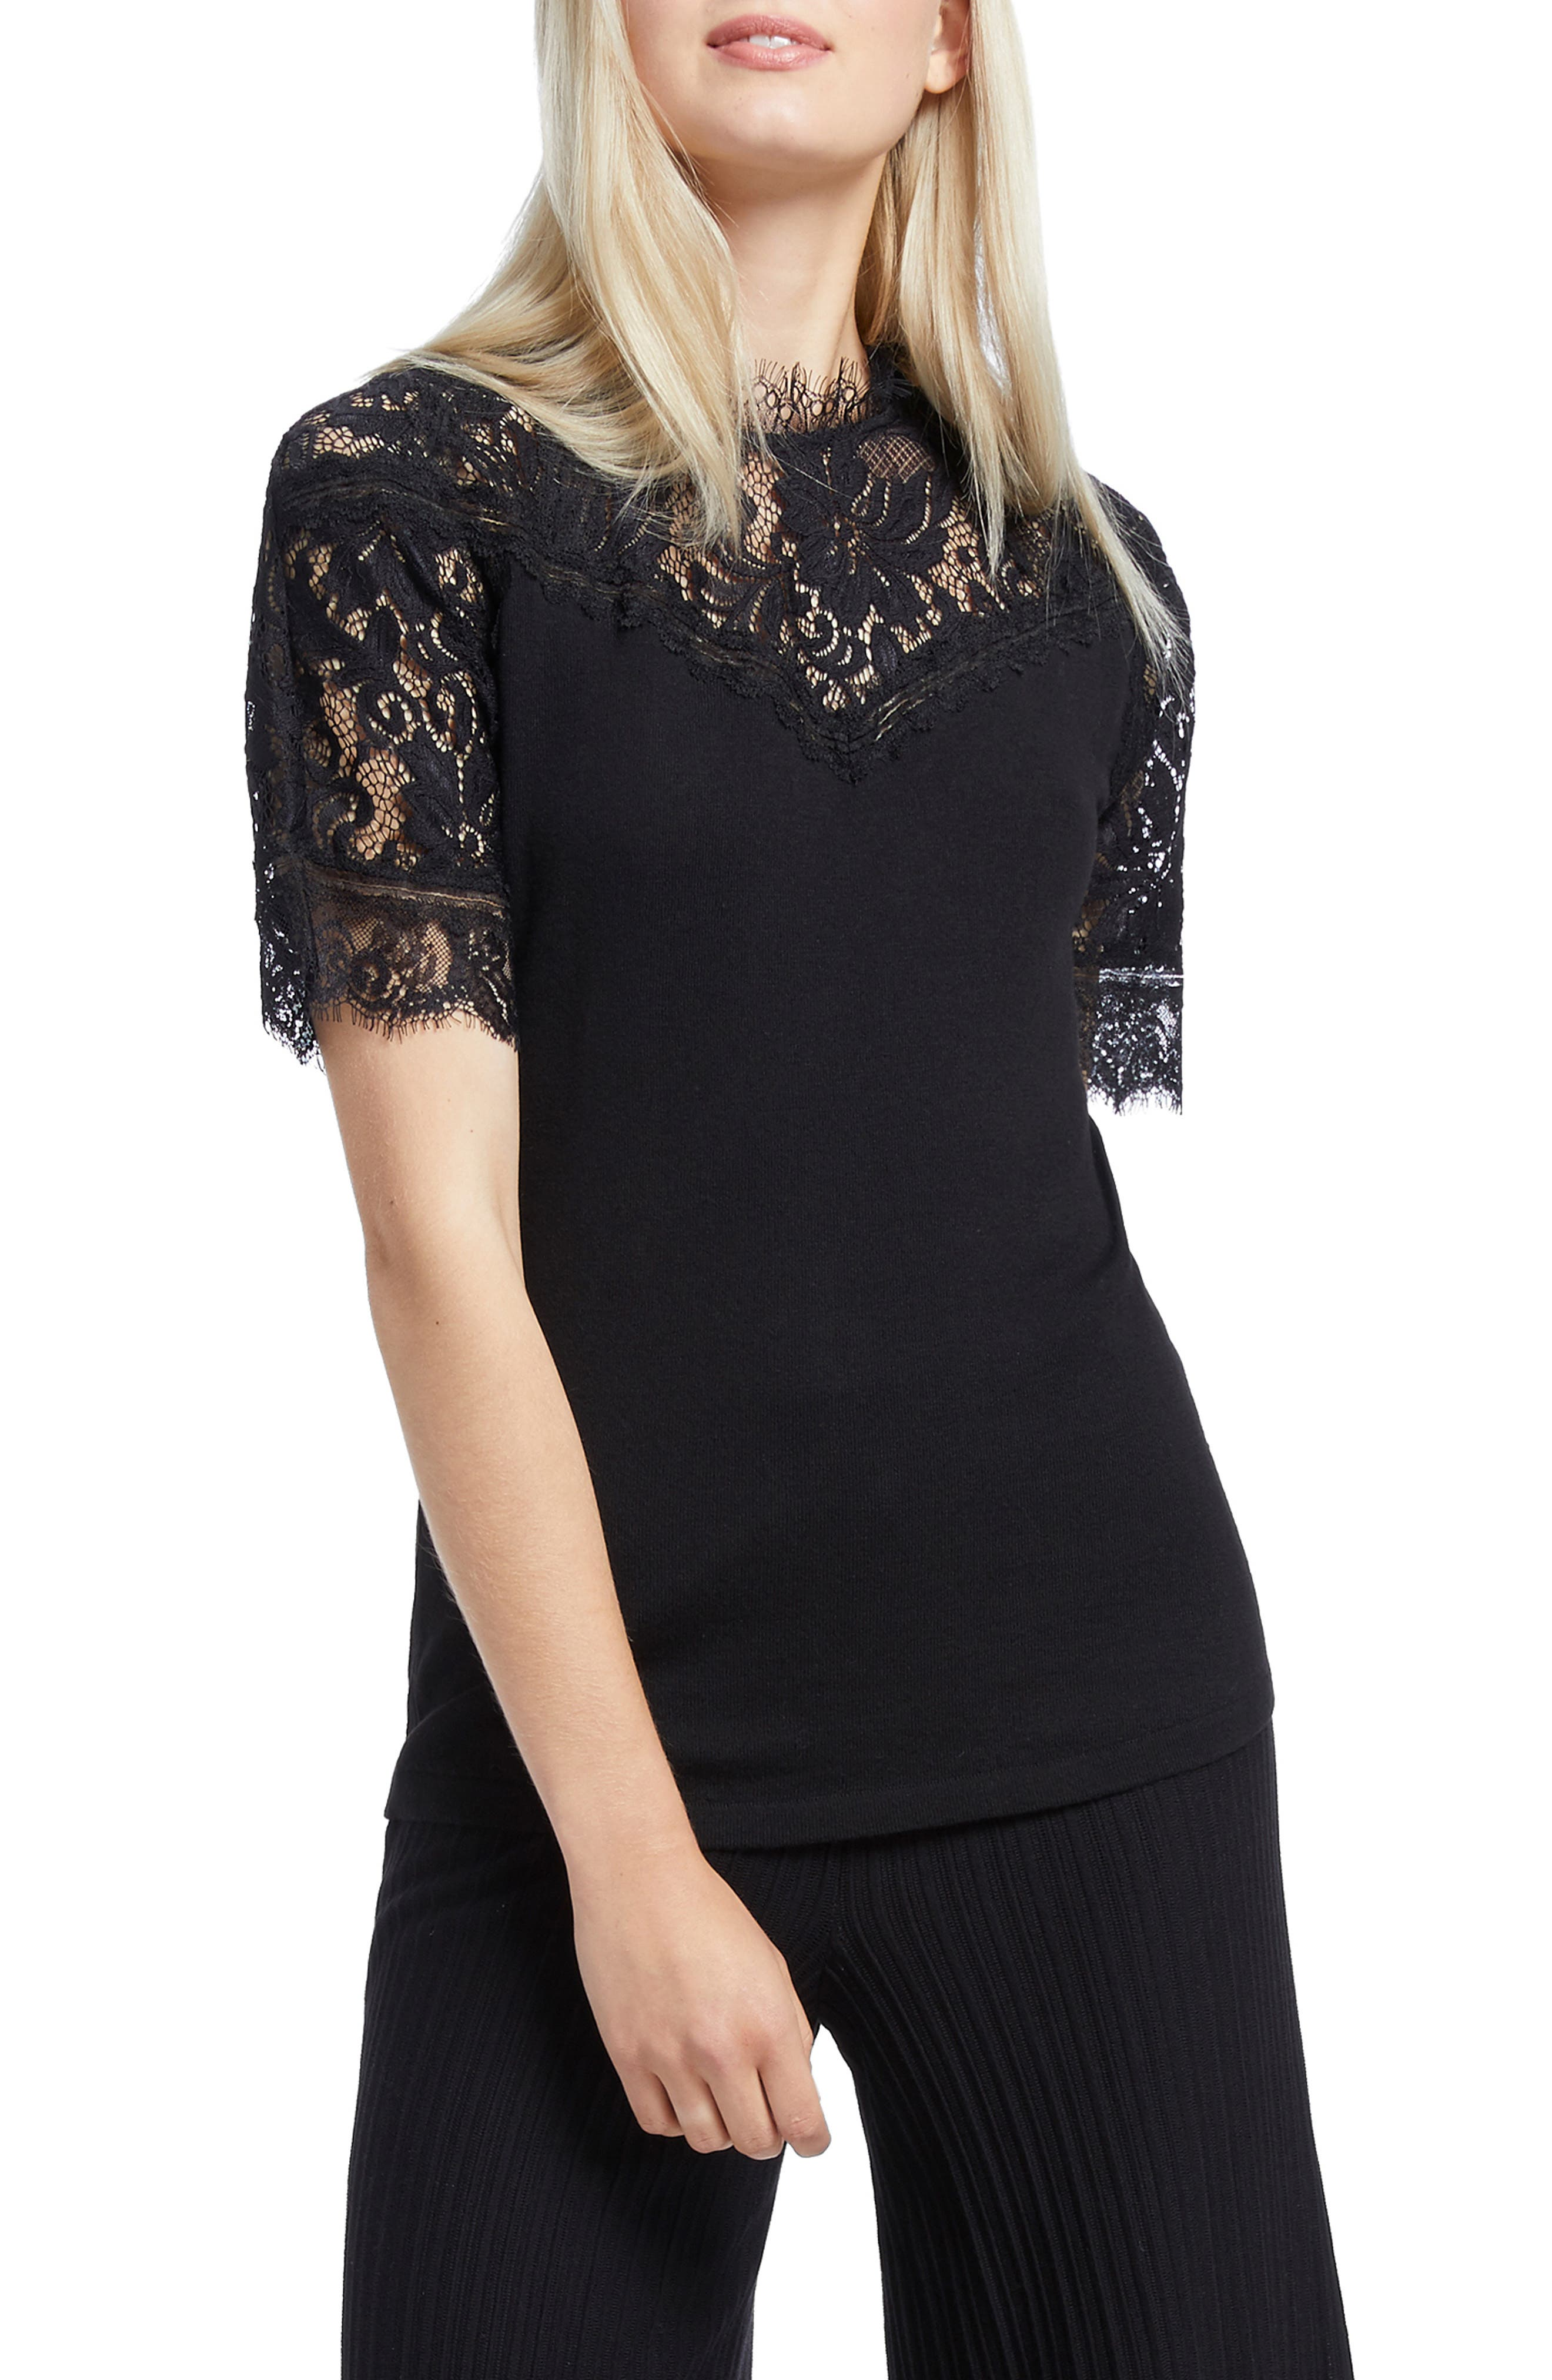 Nic+zoe Tops Victorian Lace Top